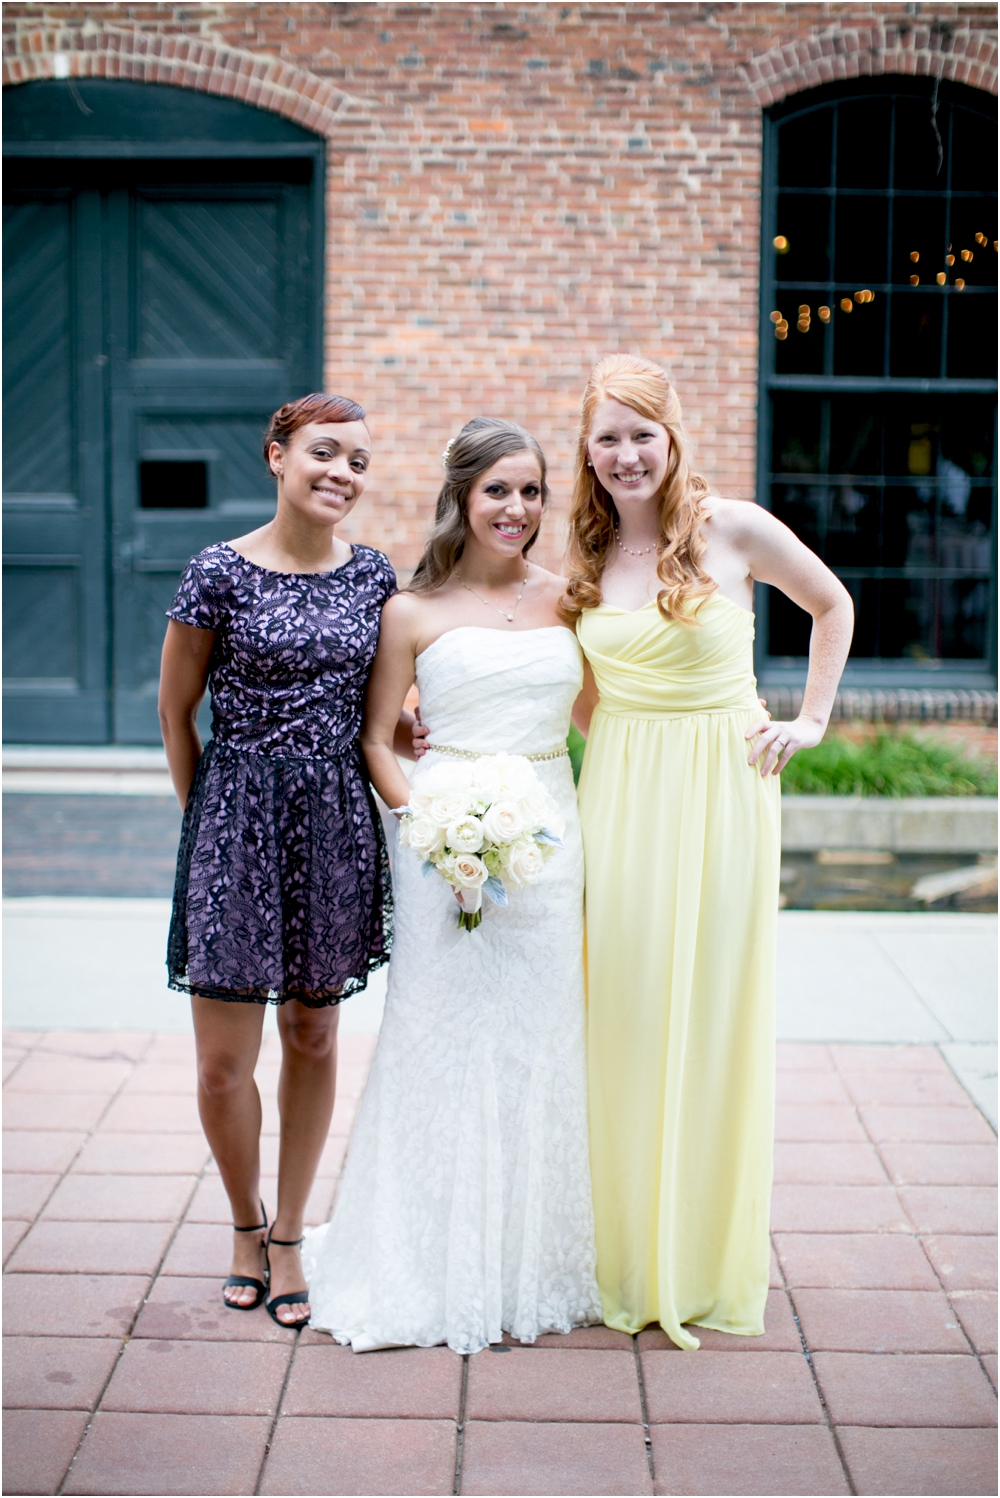 A Gold & White Inspired Mt Washington Mill Dye House Wedding | Living Radiant Photography | Michael Kors & Kate Spade Wedding